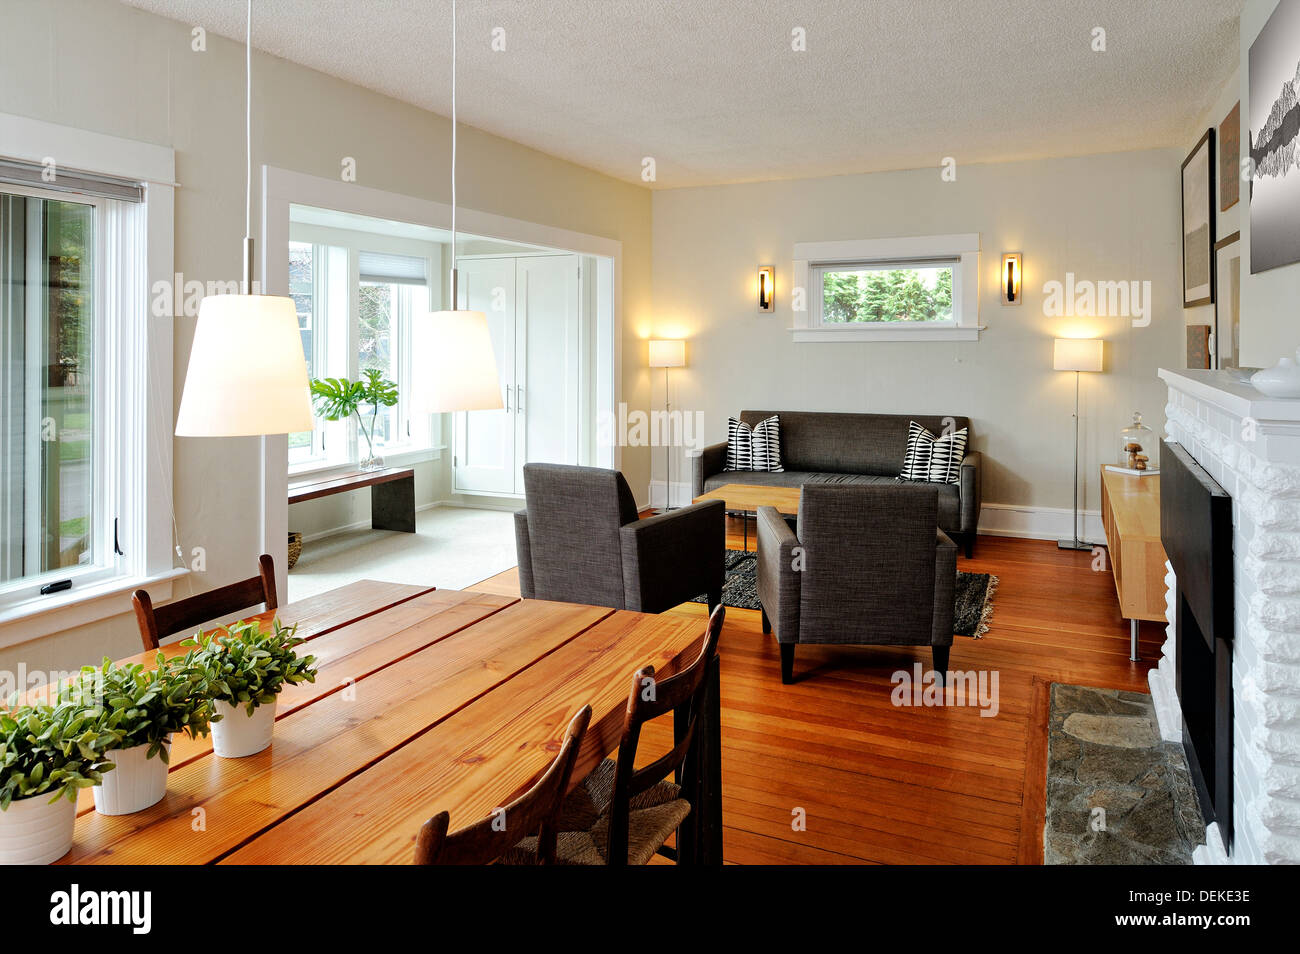 Dining table and livingroom in modern craftsman home - Stock Image